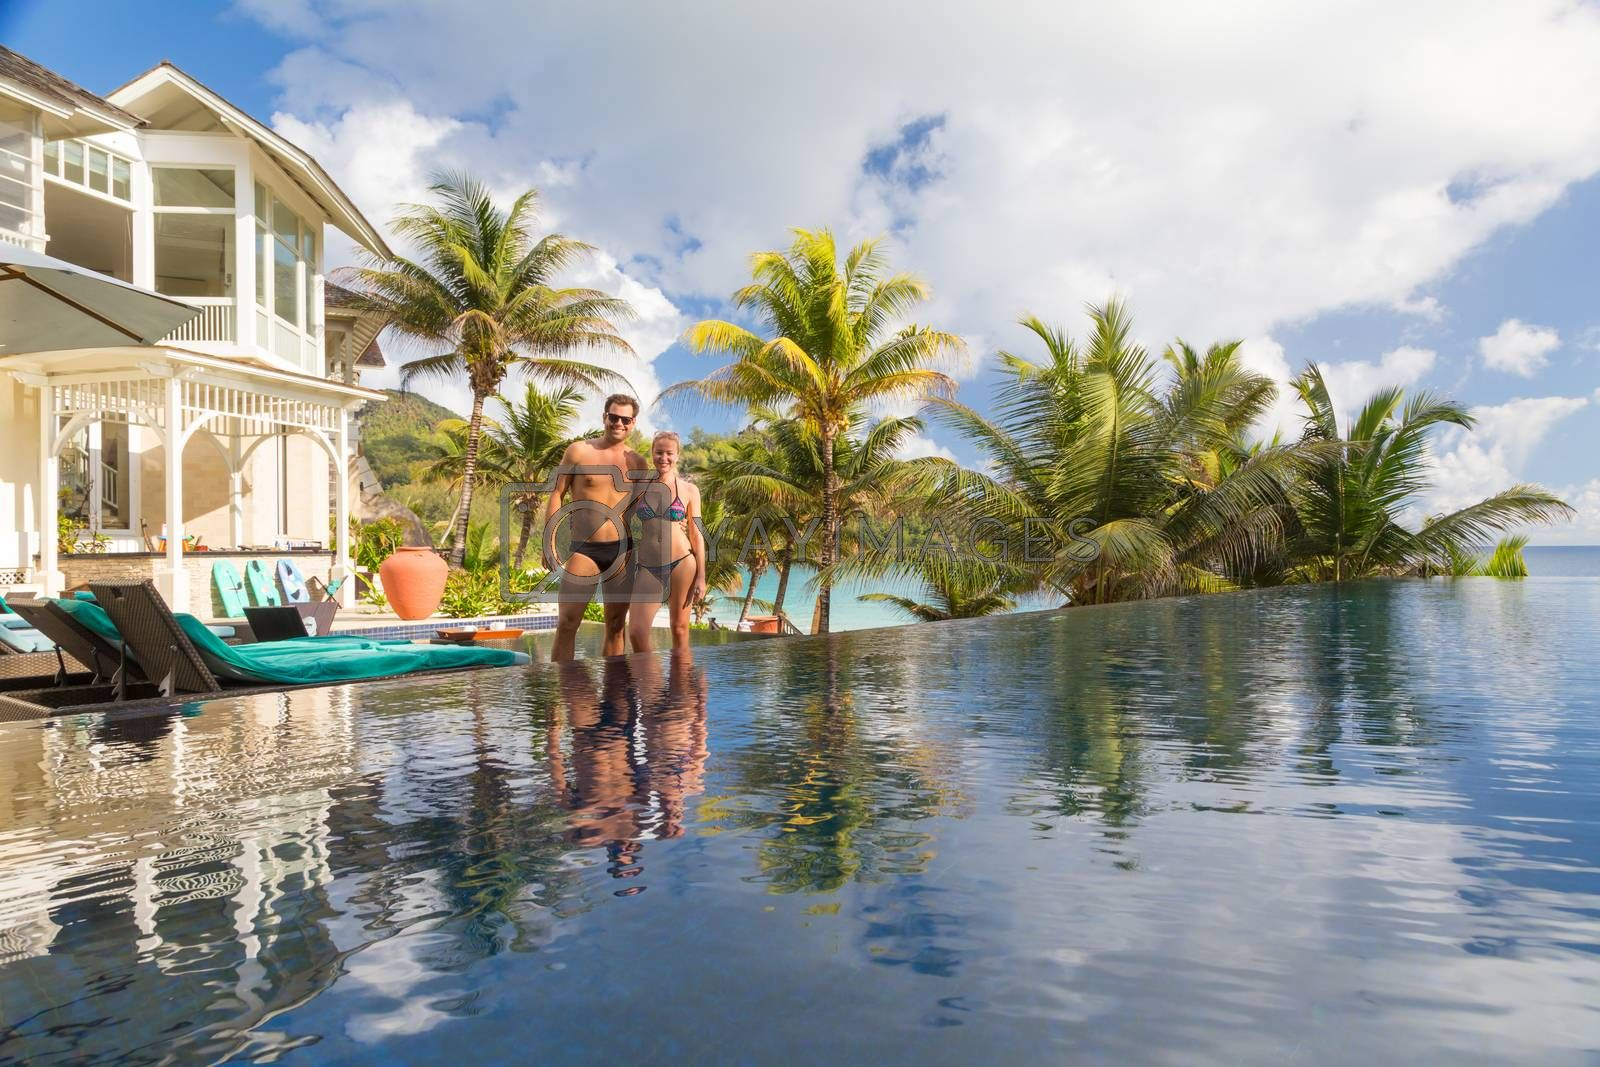 Newlyweds on honeymoon vacations on Mahe island, Seychelles. Couple relaxing by luxury hotel swimming pool surrounded by various type of palm trees on the beach.